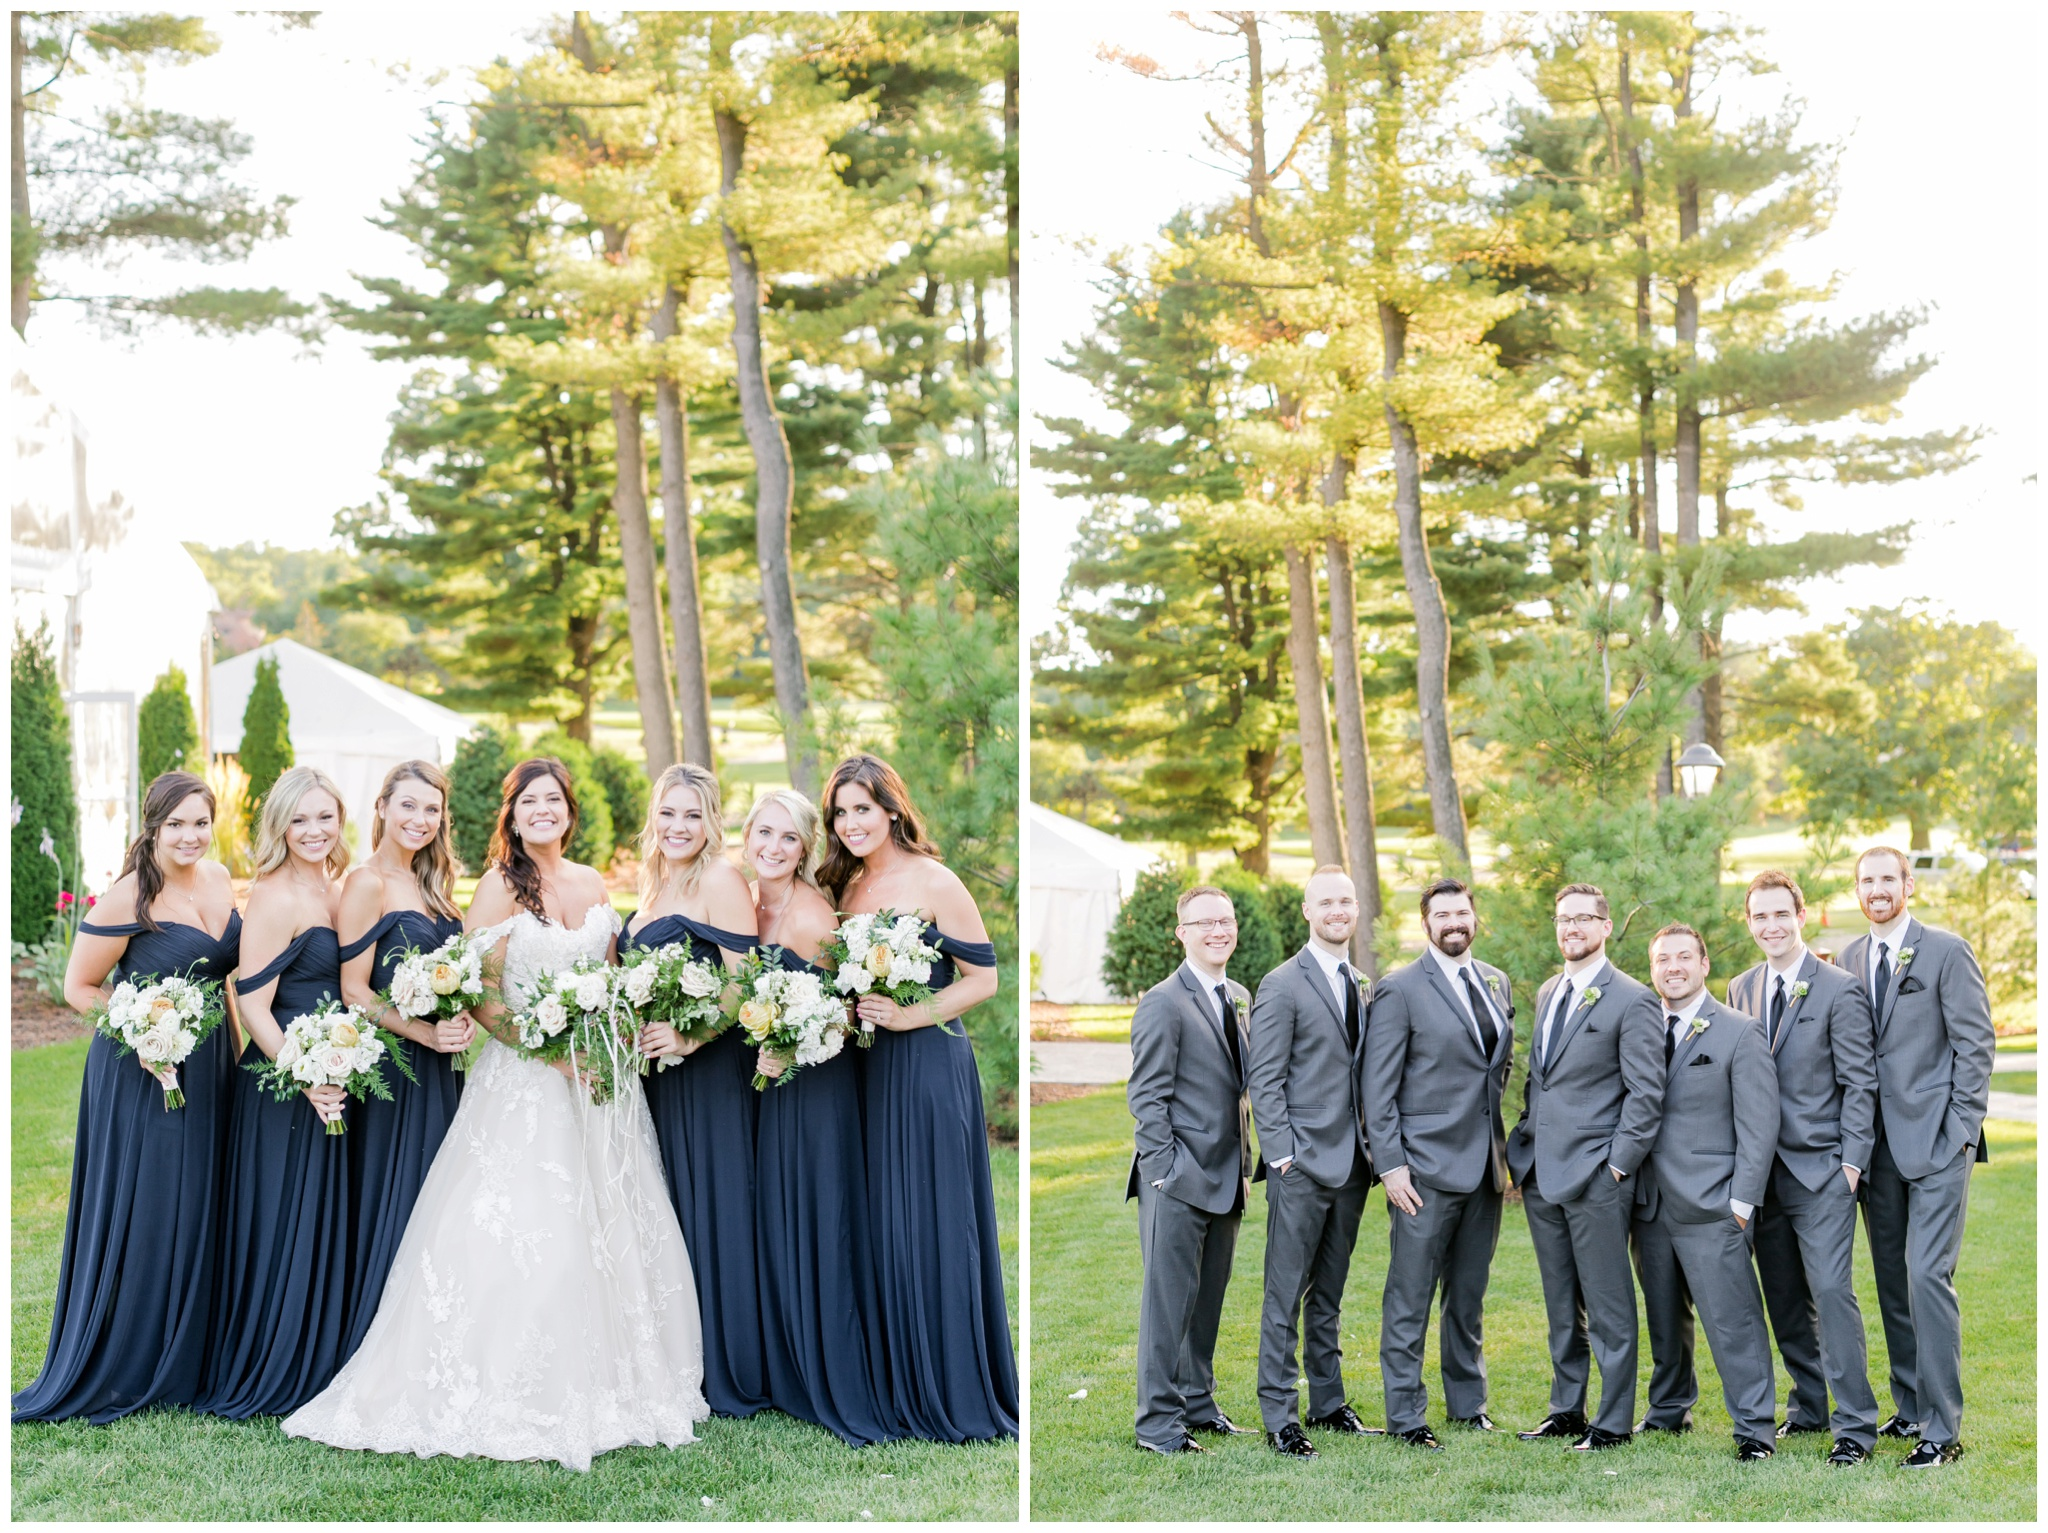 bishops_bay_country_club_wedding_middleton_wisconsin_caynay_photo_4718.jpg